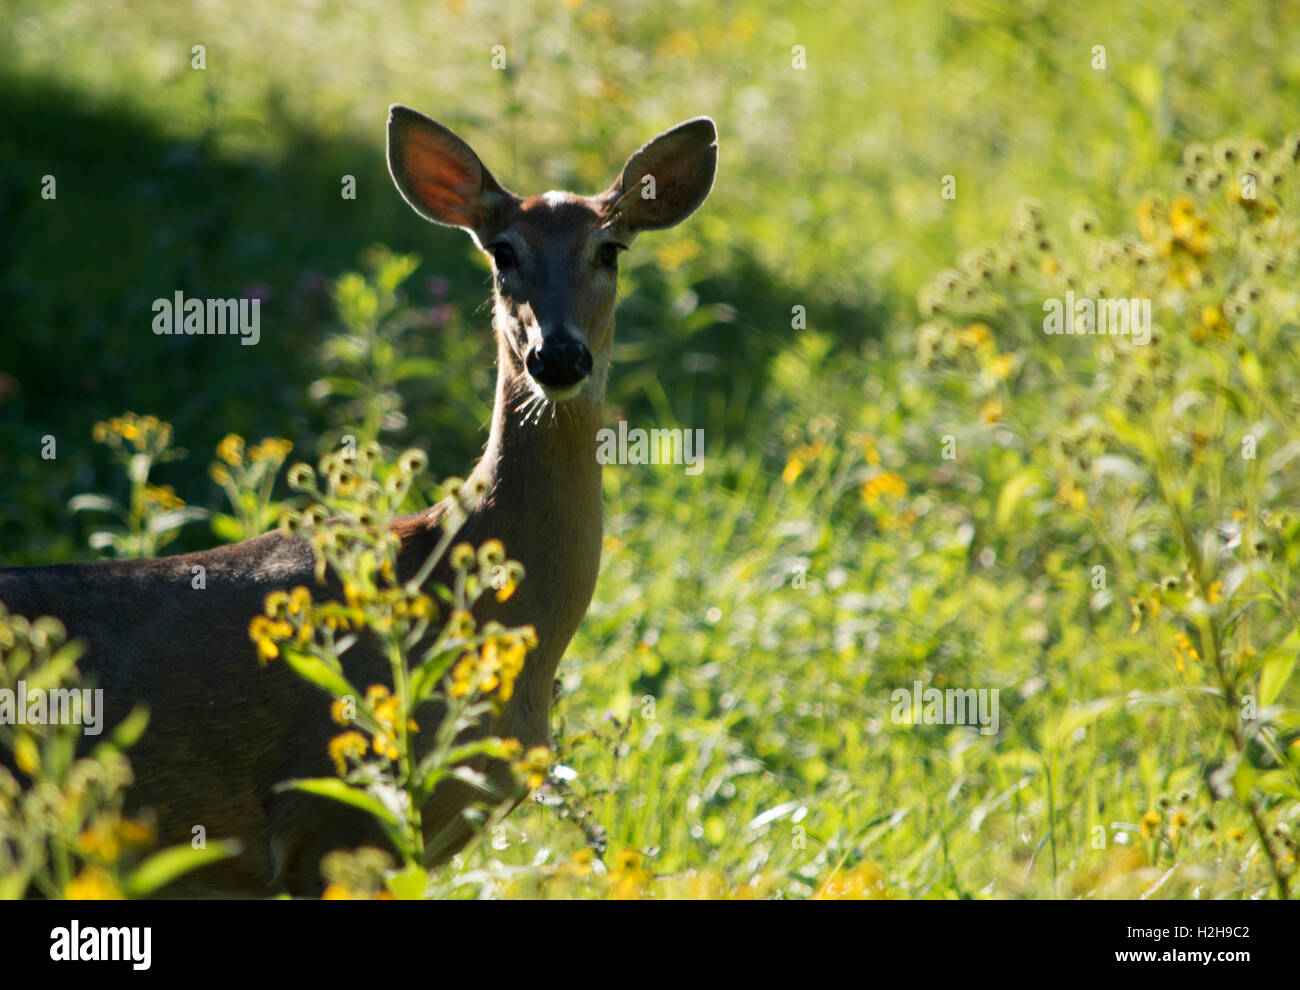 deer peering through foliage - Stock Image